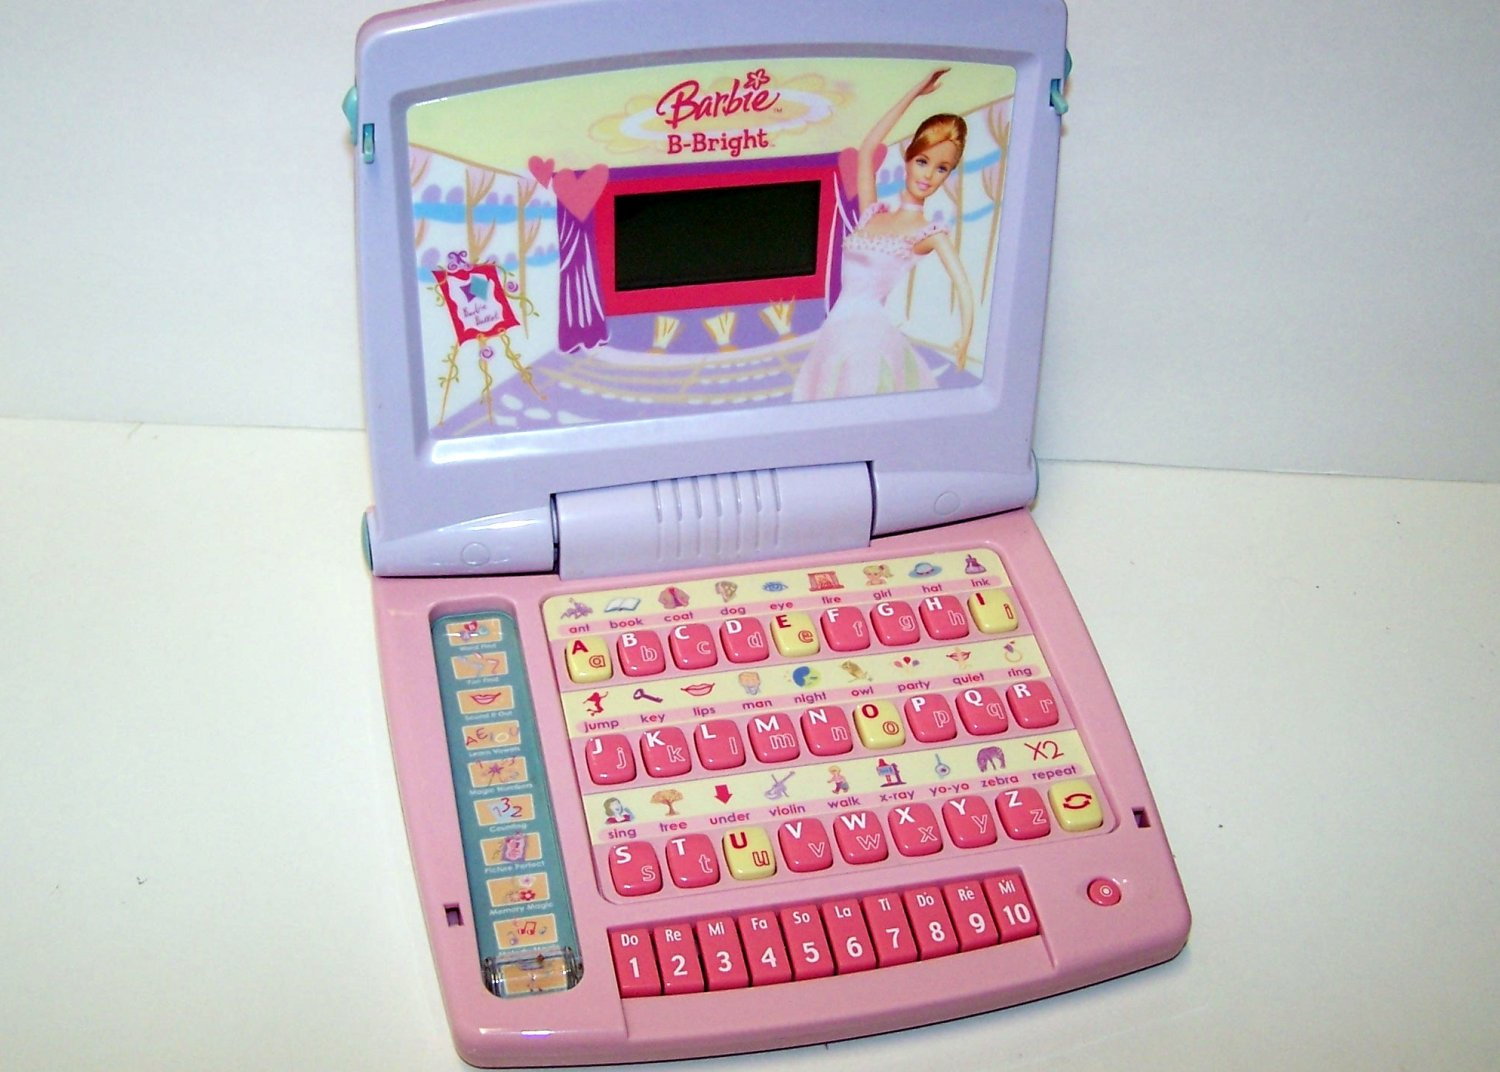 Barbie Ballet B-Bright EDUCATIONAL LEARNING Laptop